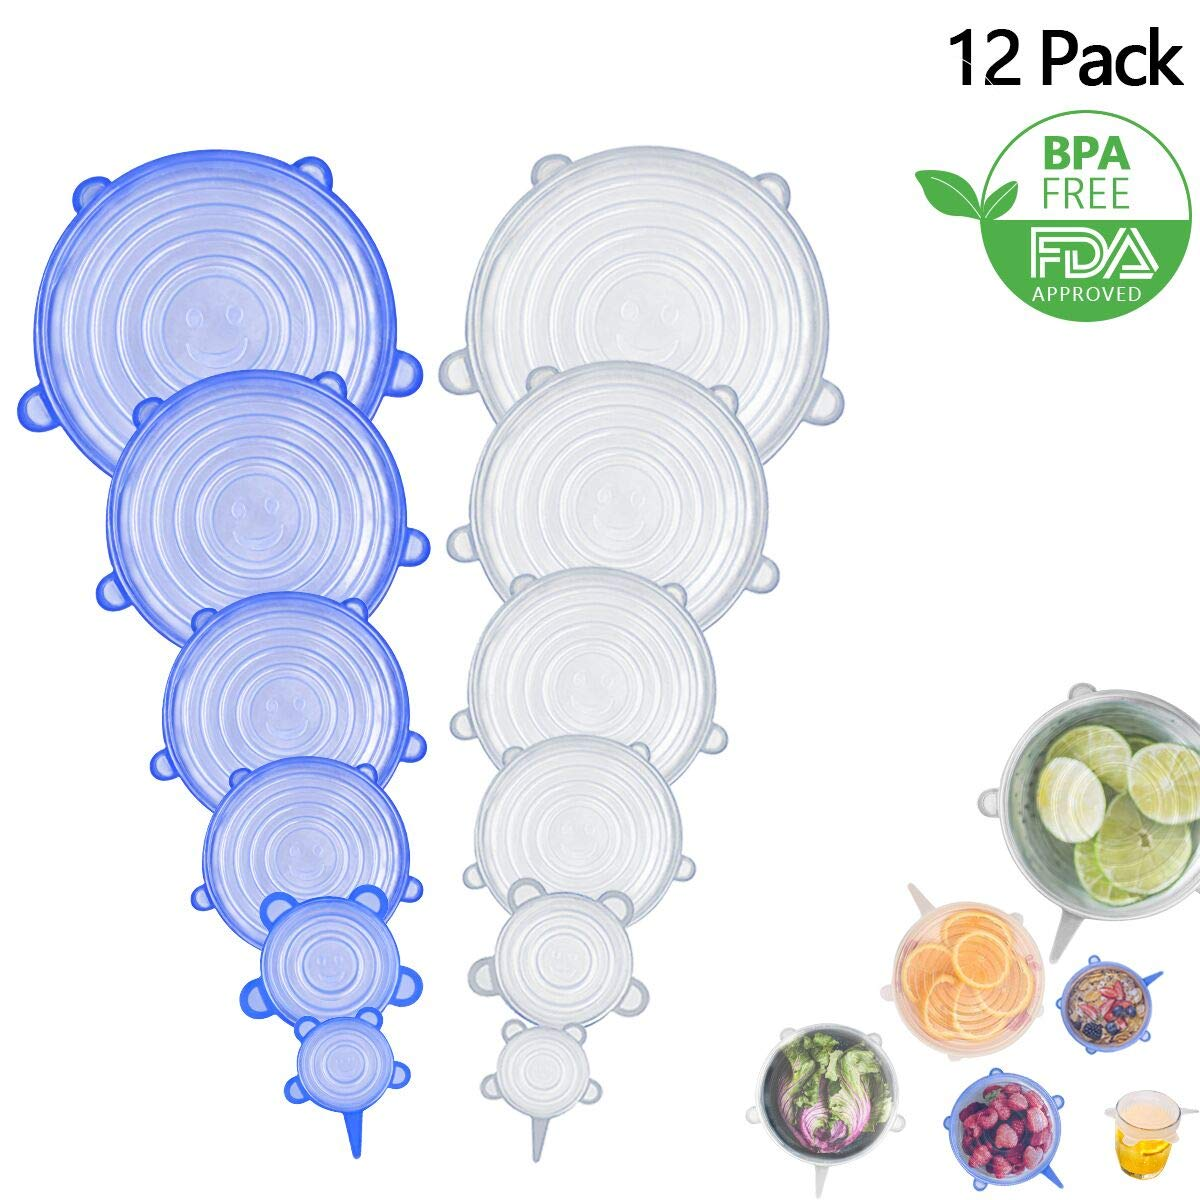 12 Pack Silicone Stretch Lids, rabofly Various Size Food Storage Covers Reusable Durable and Expandable for Keeping Food Fresh, Dishwasher and Refrigerator Safe